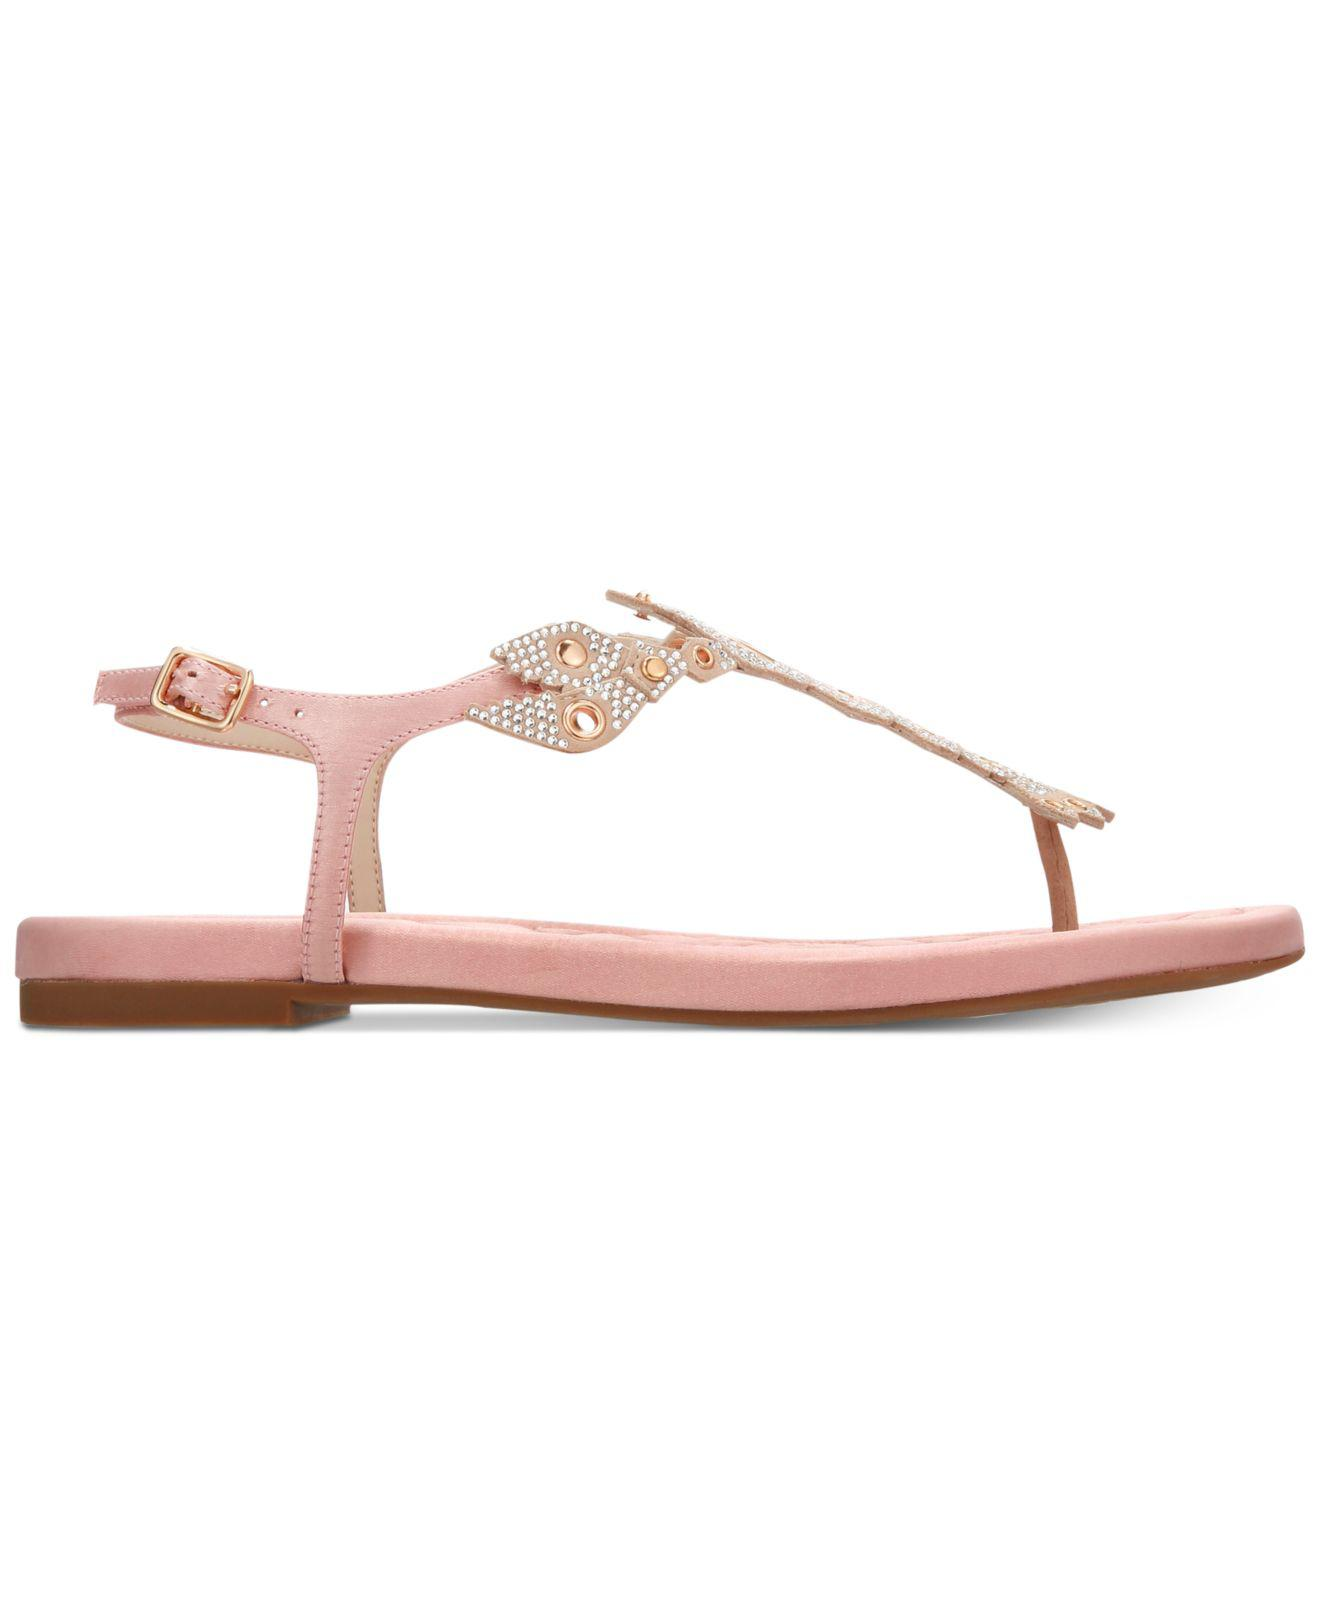 3248ea78f90 Lyst - Cole Haan Pinch Lobster Sandals in Pink